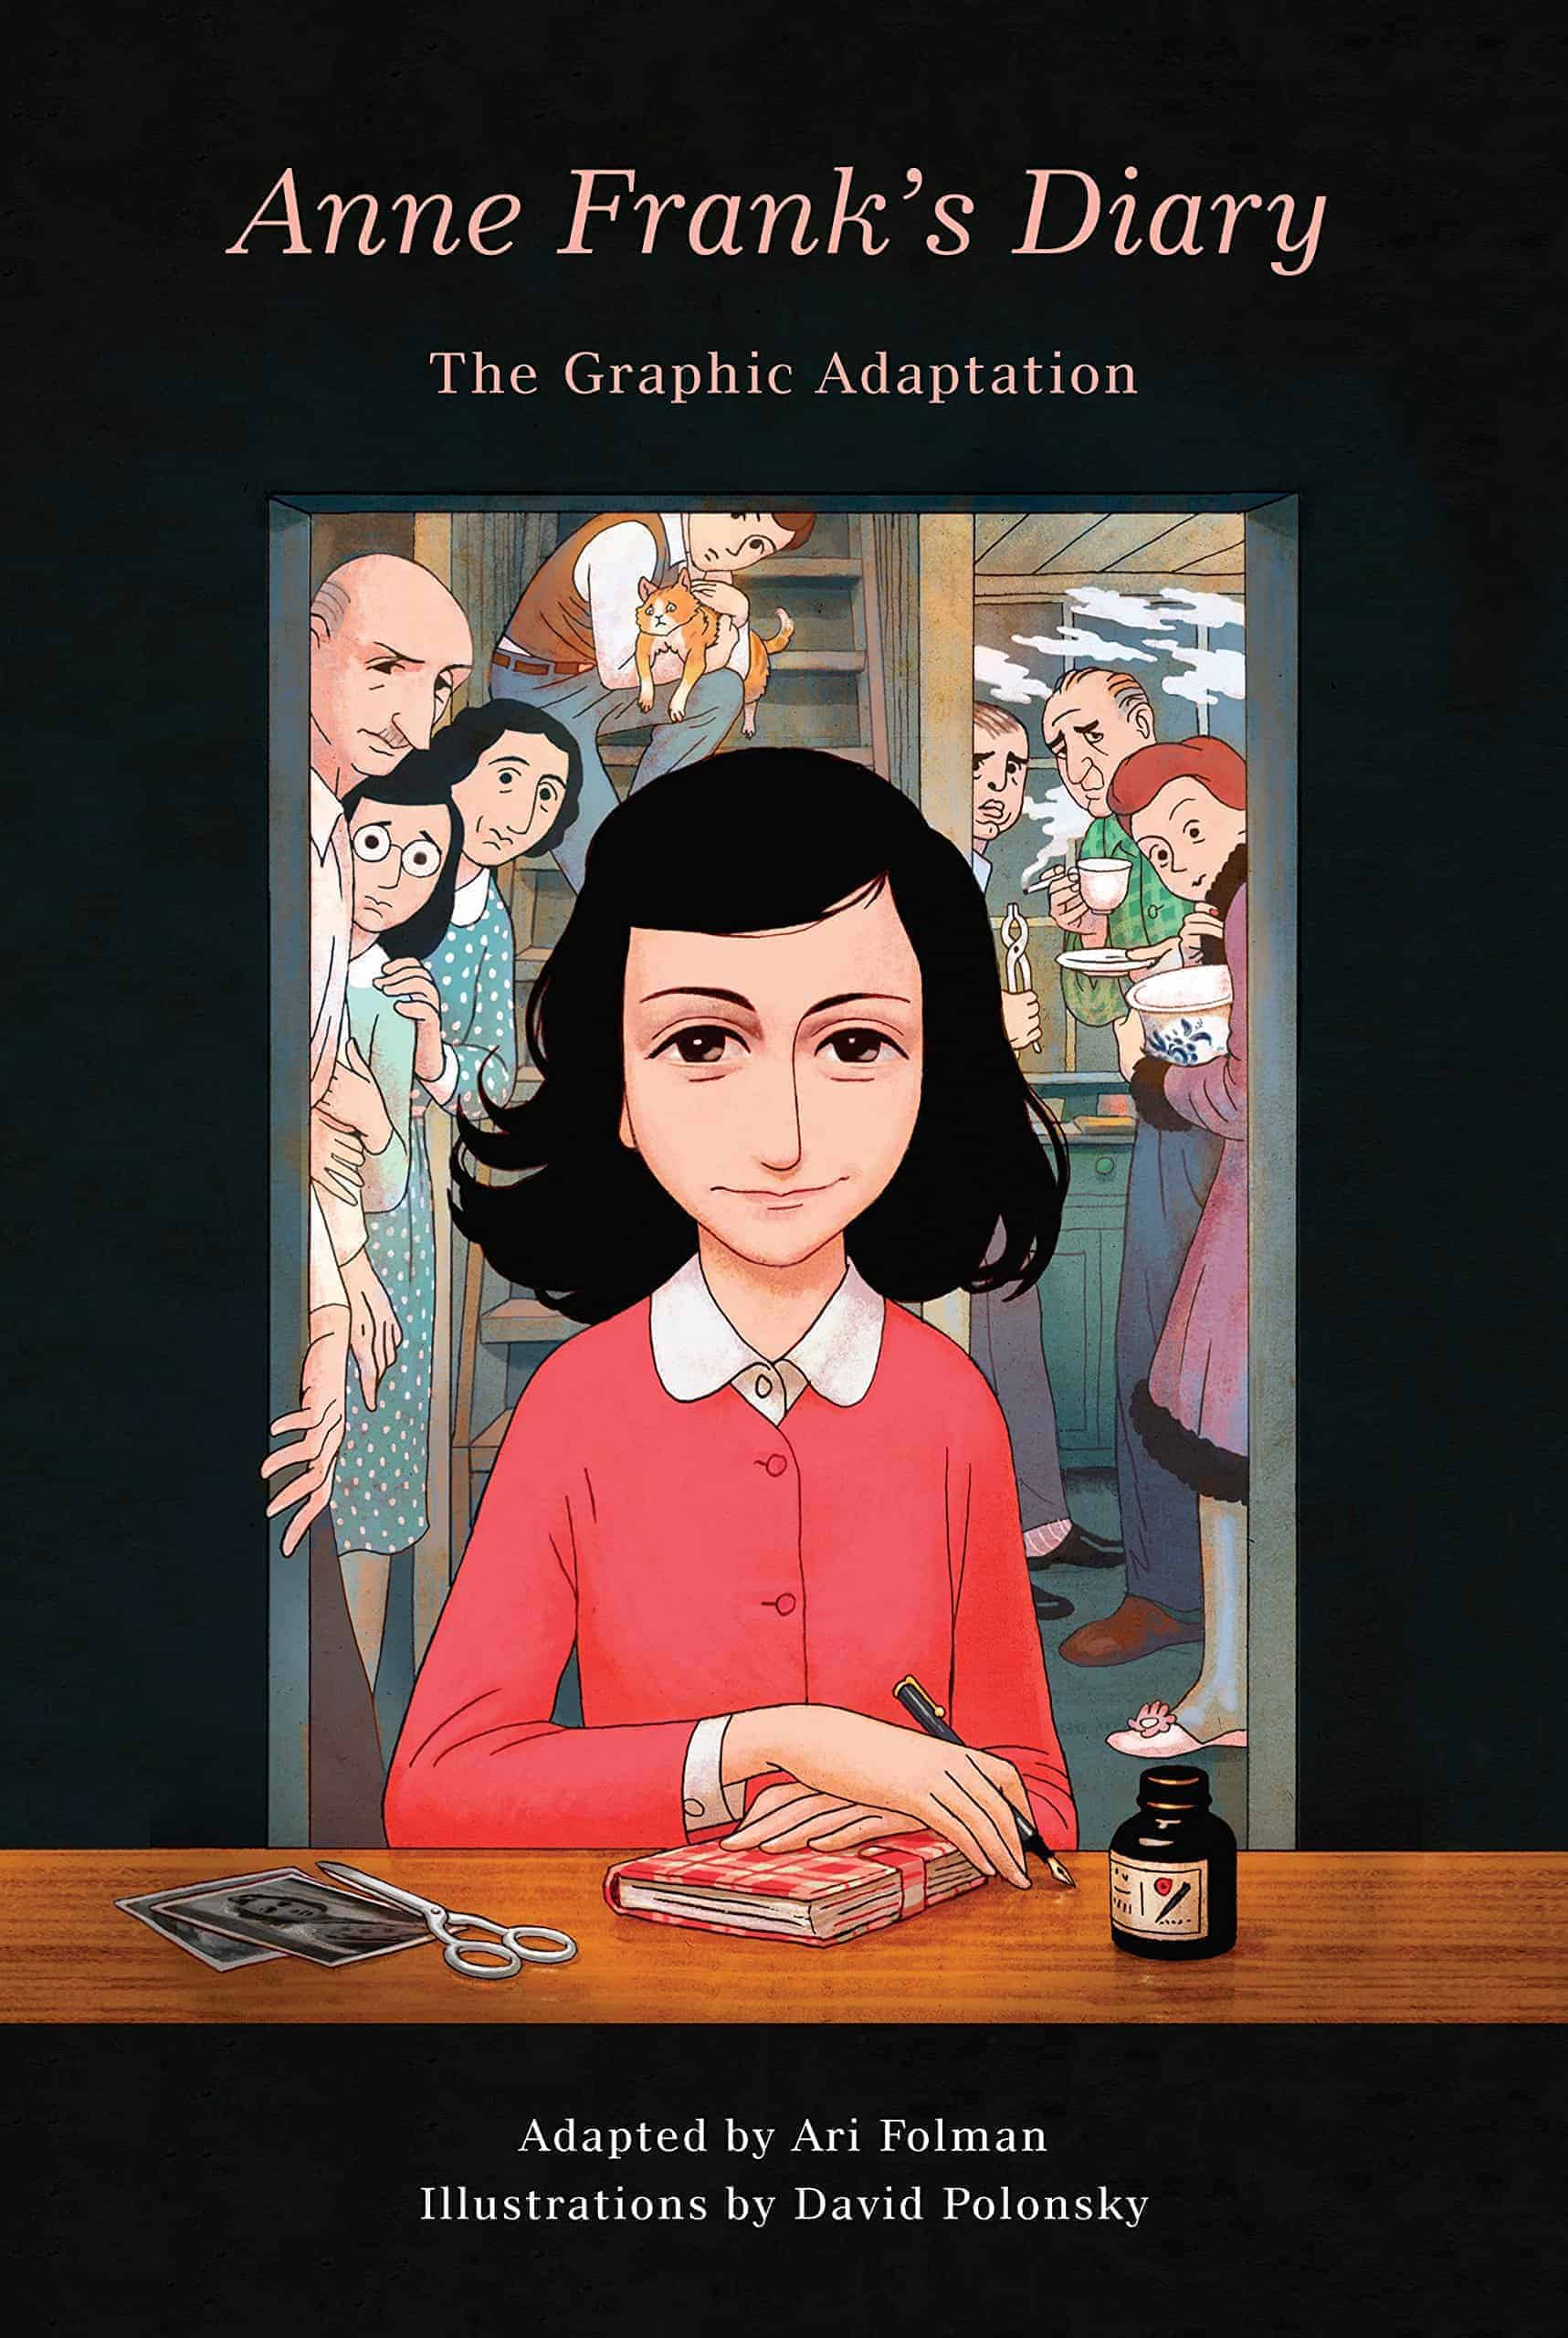 graphic novel biography for Women's History Month